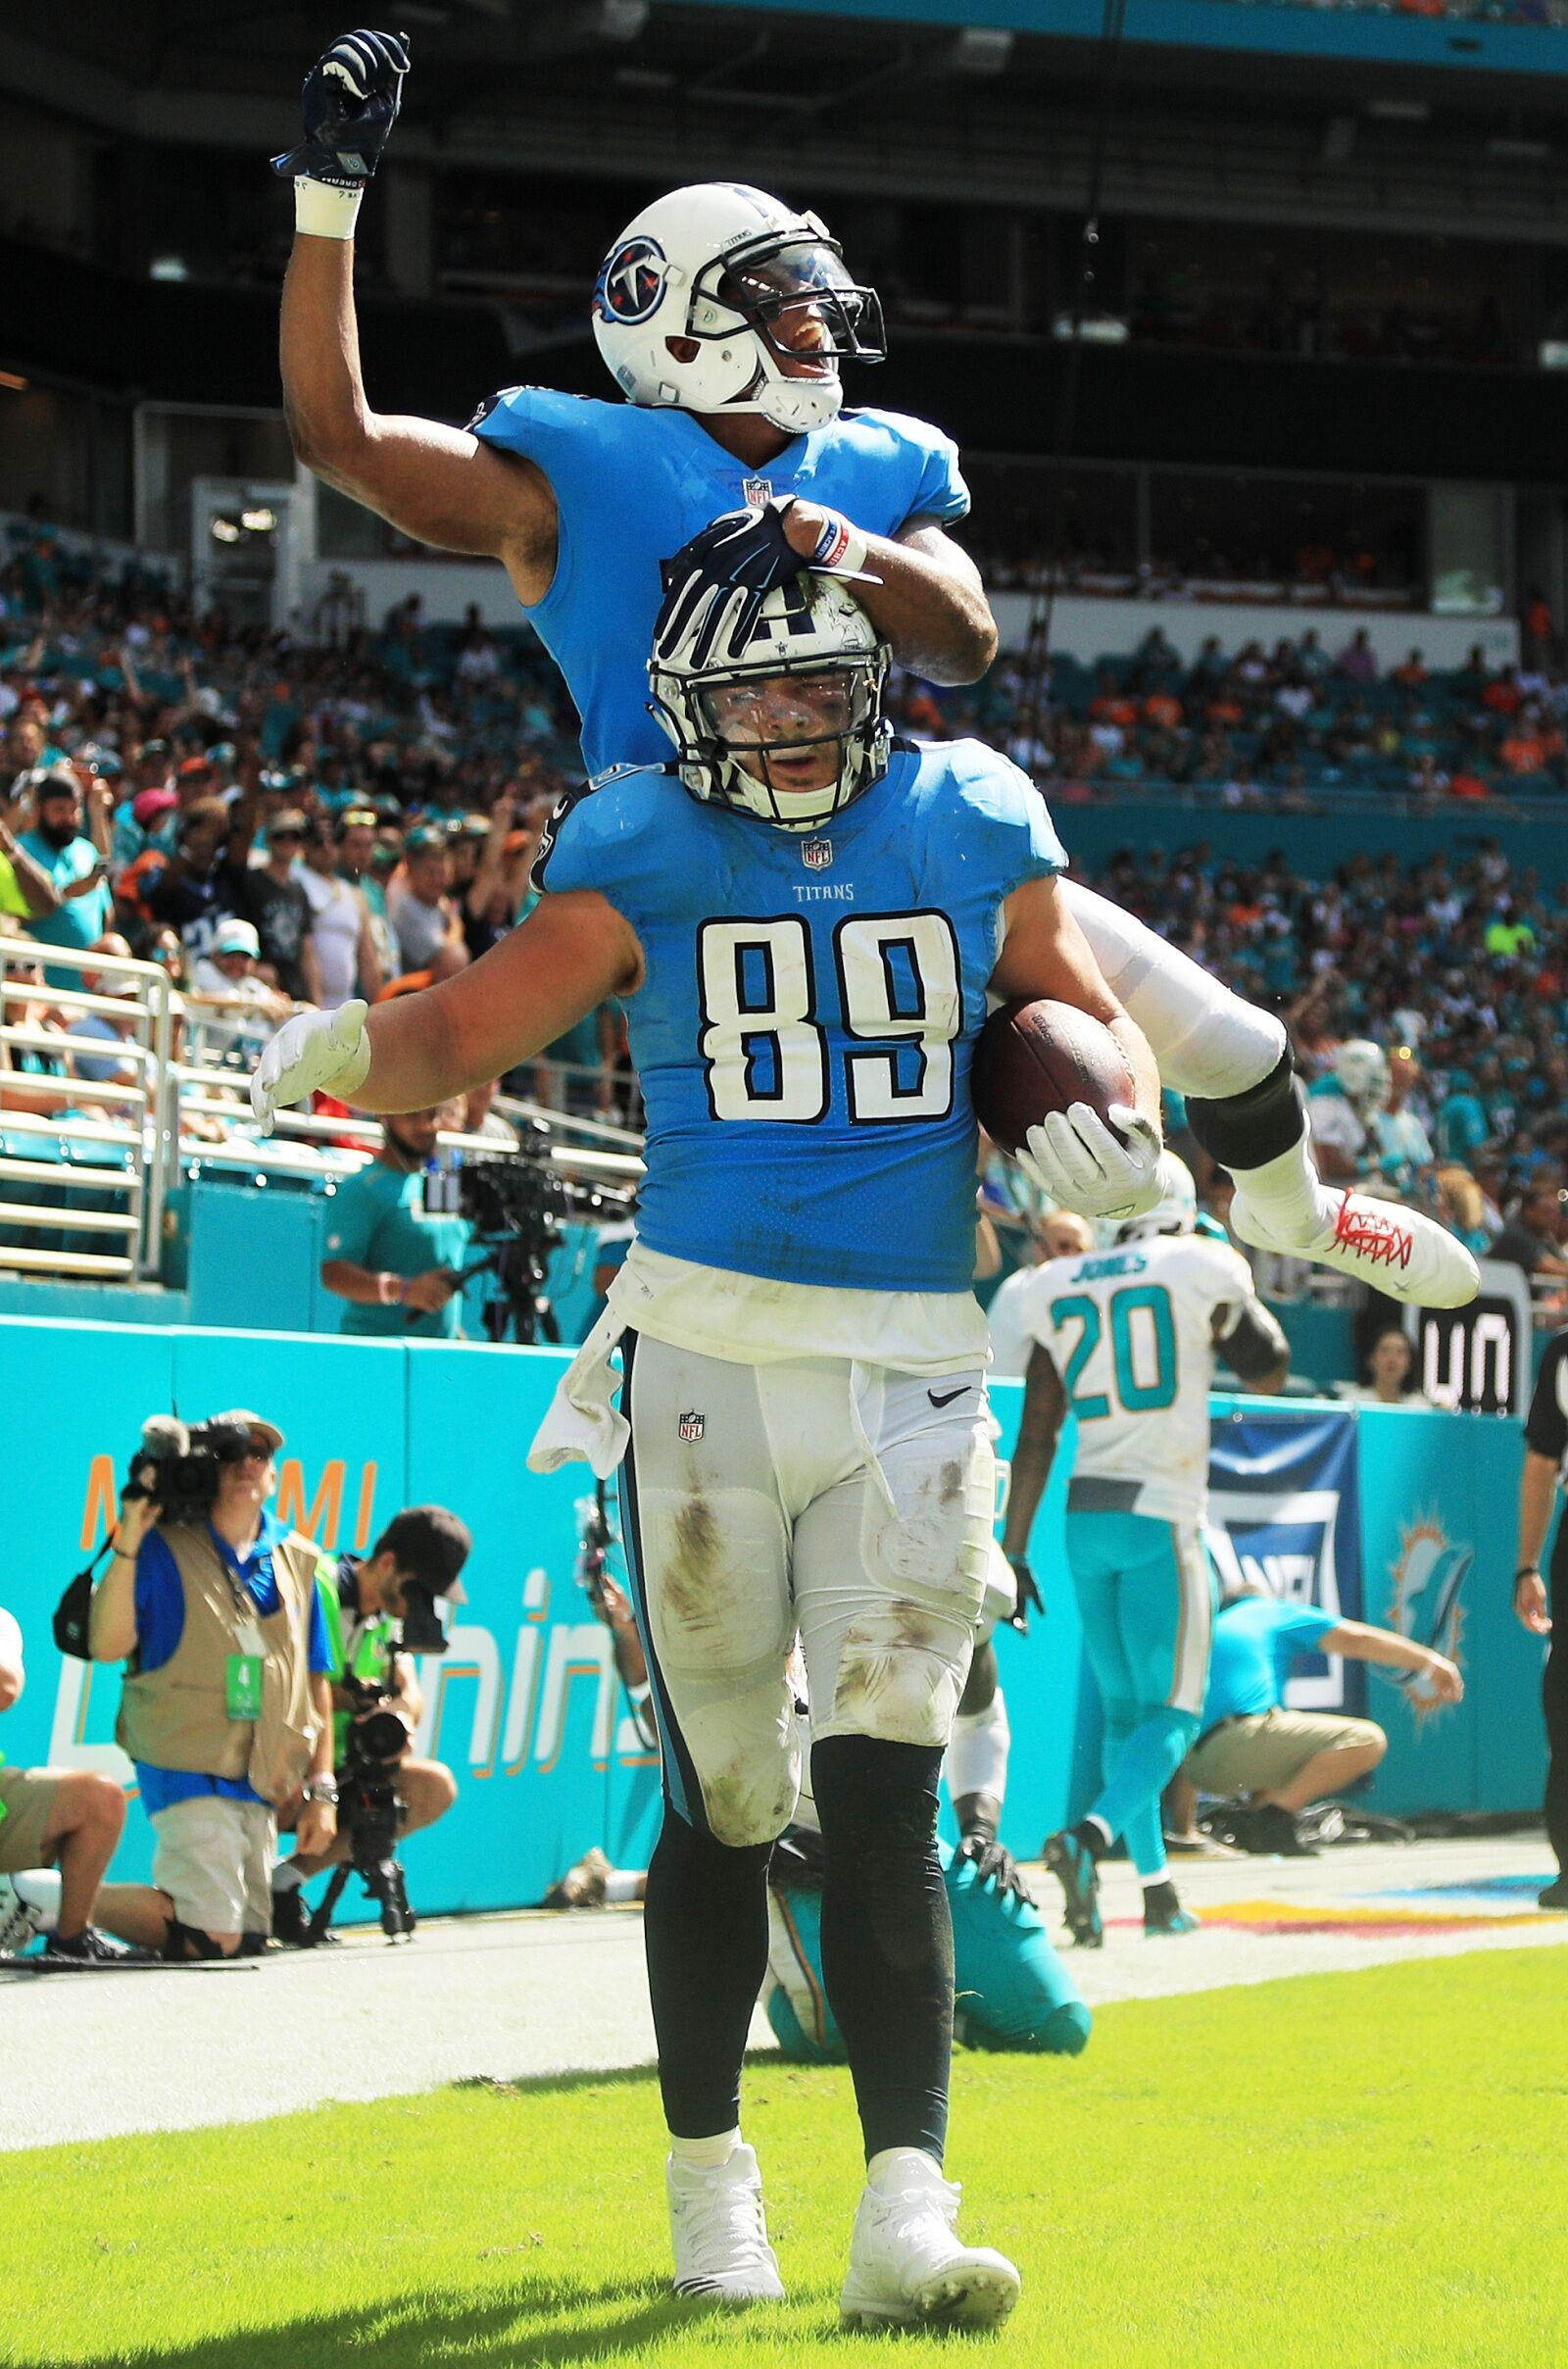 Rishard Matthews: Let your red flags fly, but we'll pass